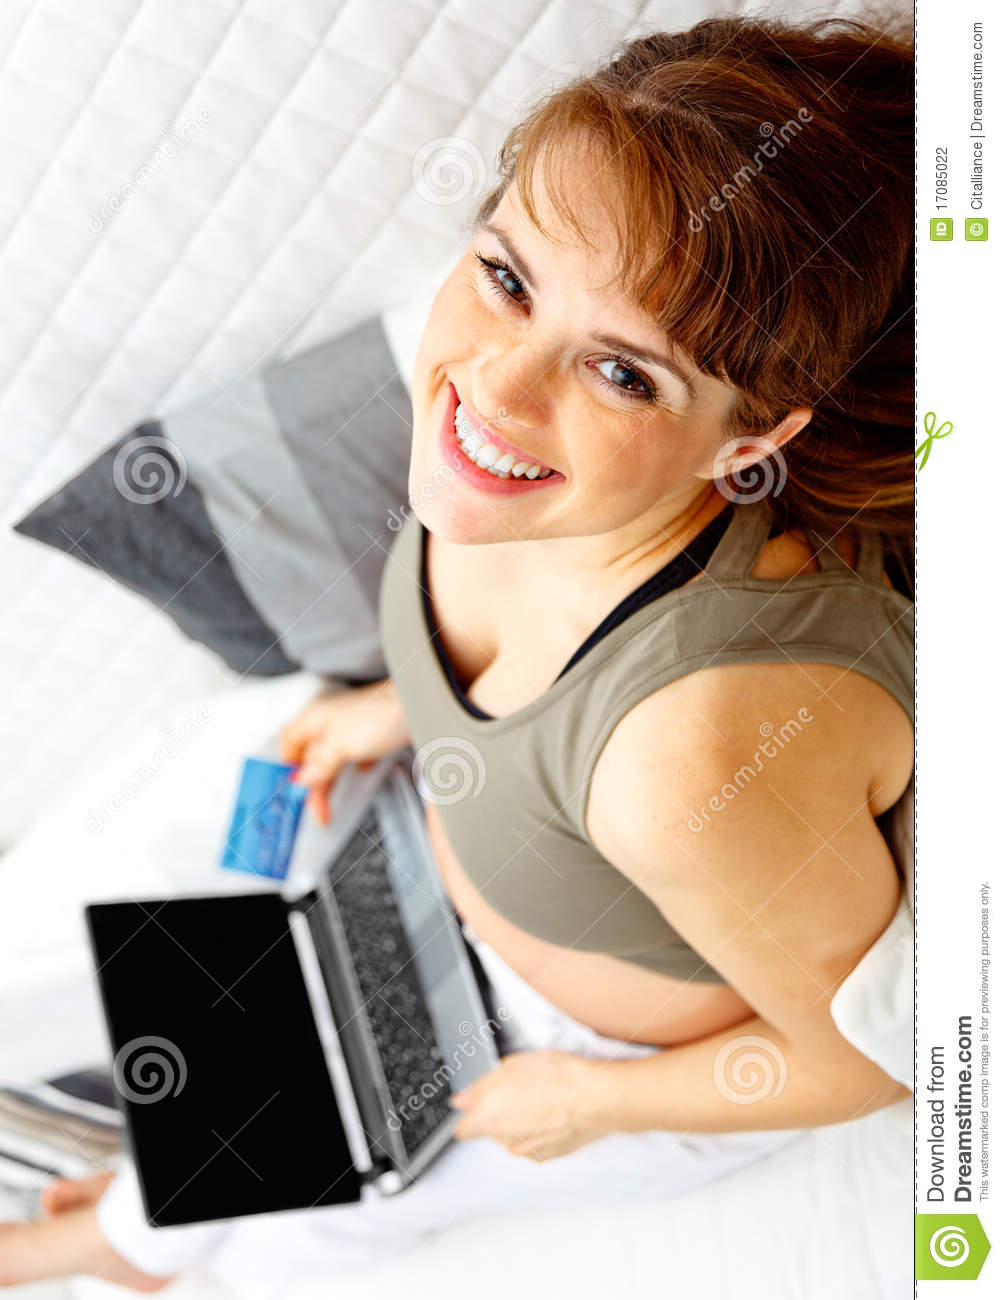 Pregnant female with the laptop and credit card